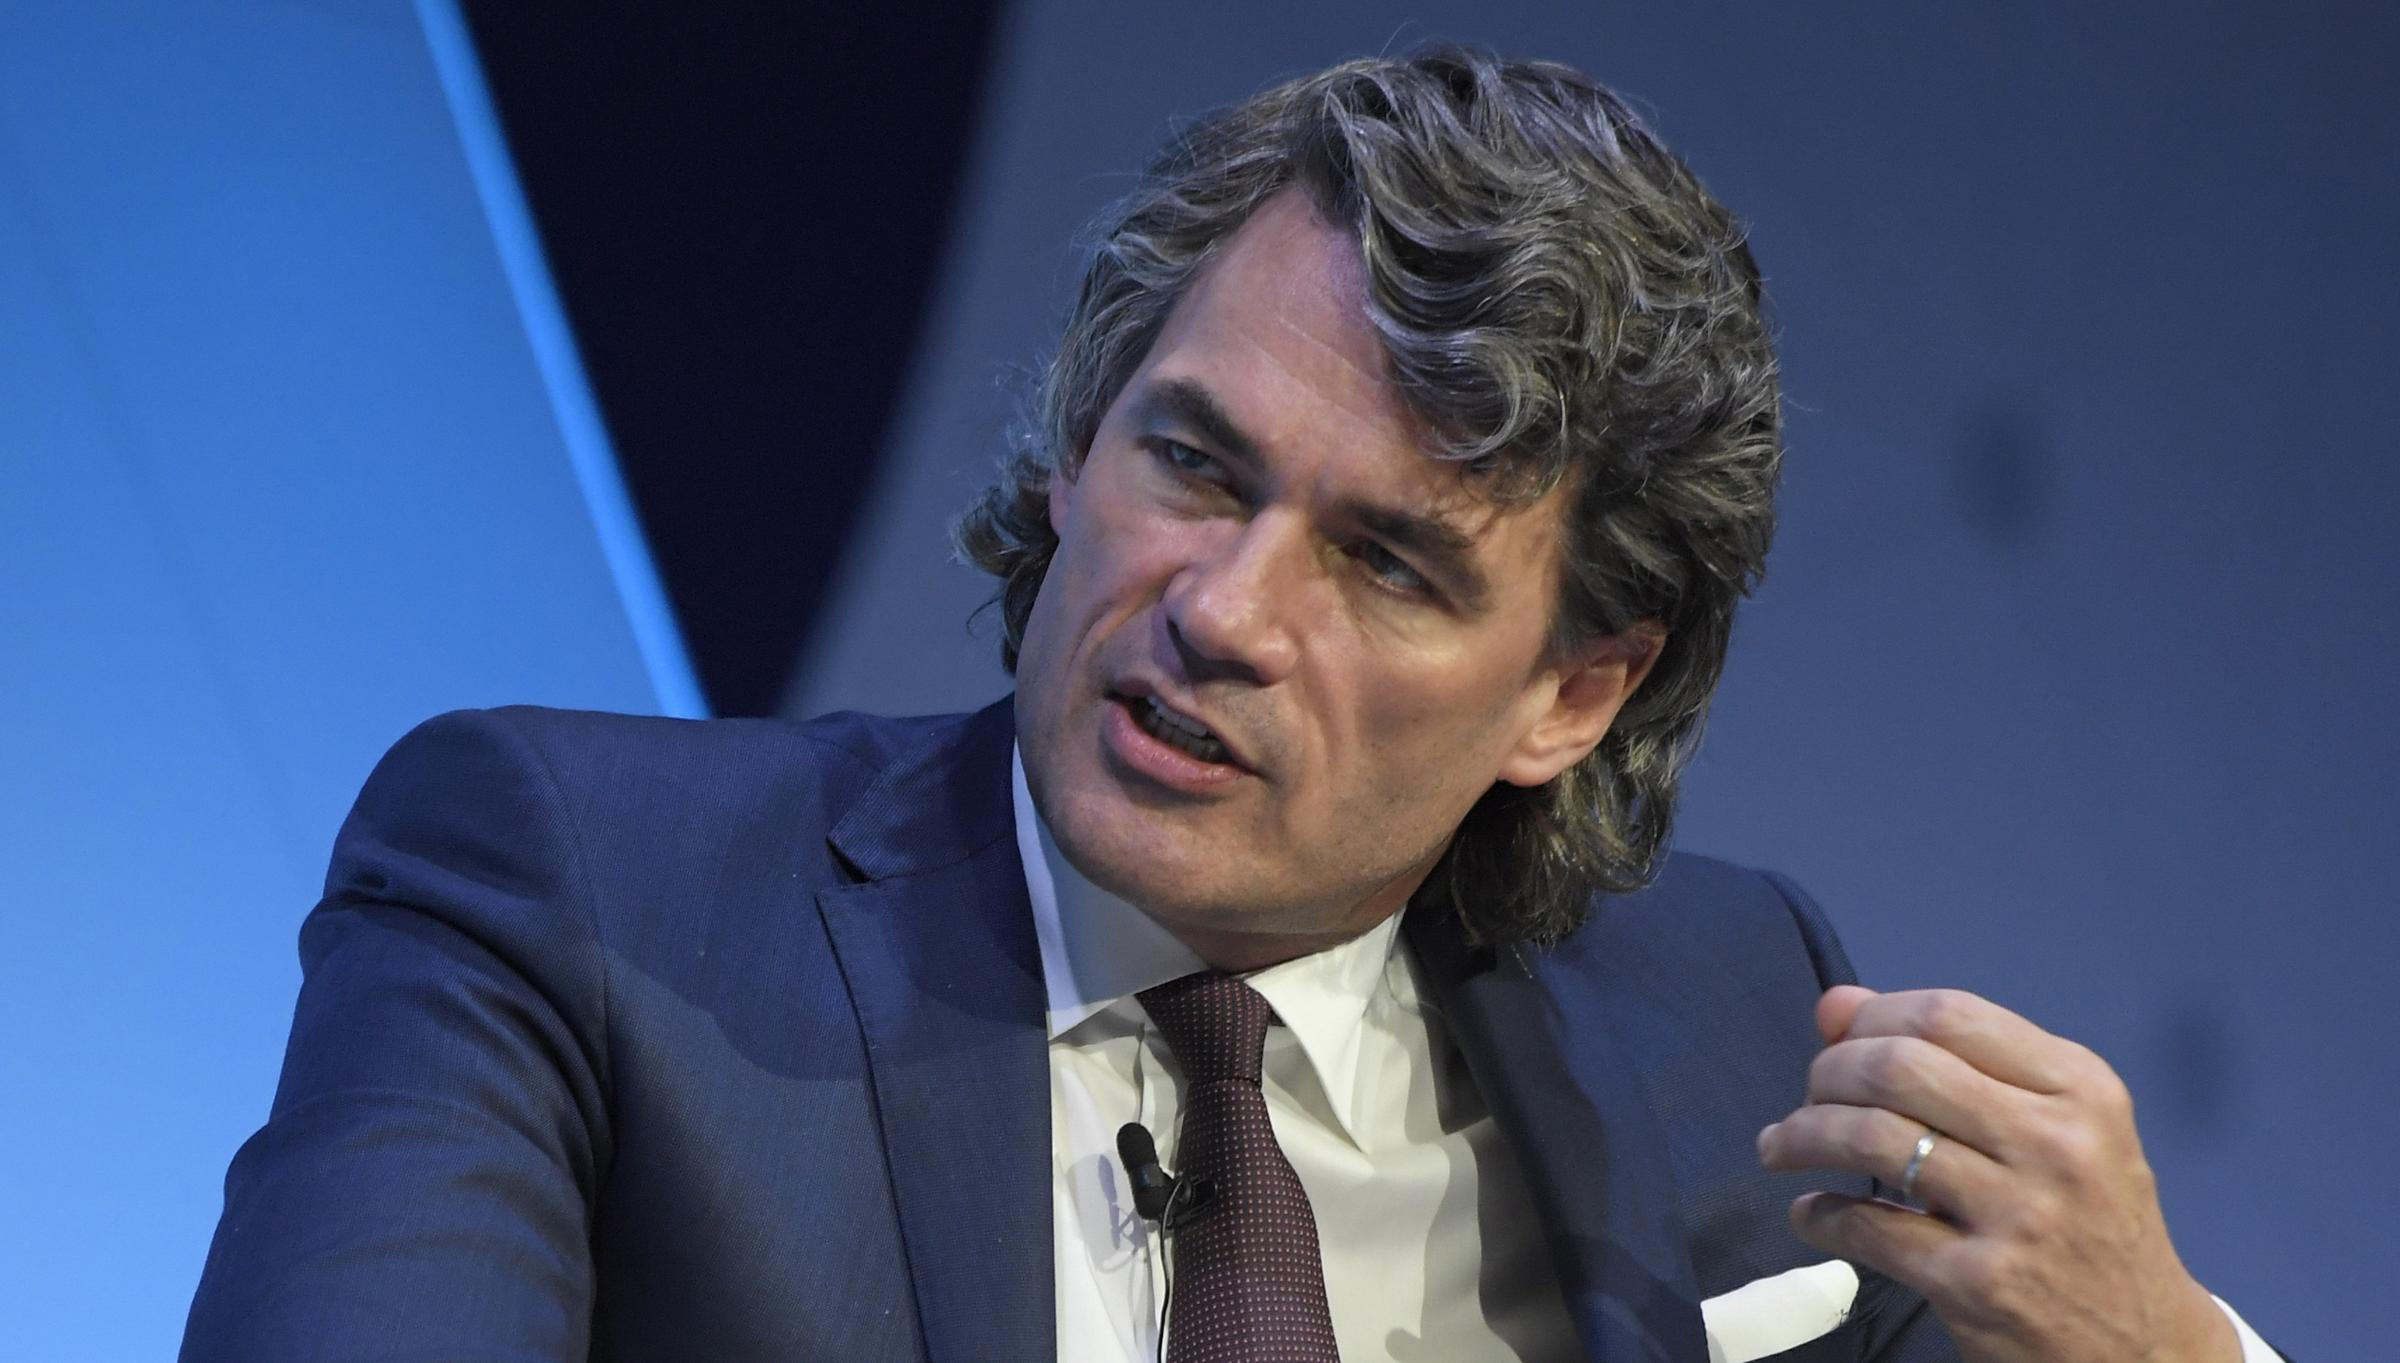 BT chief executive Gavin Patterson earned £2.3m in one year